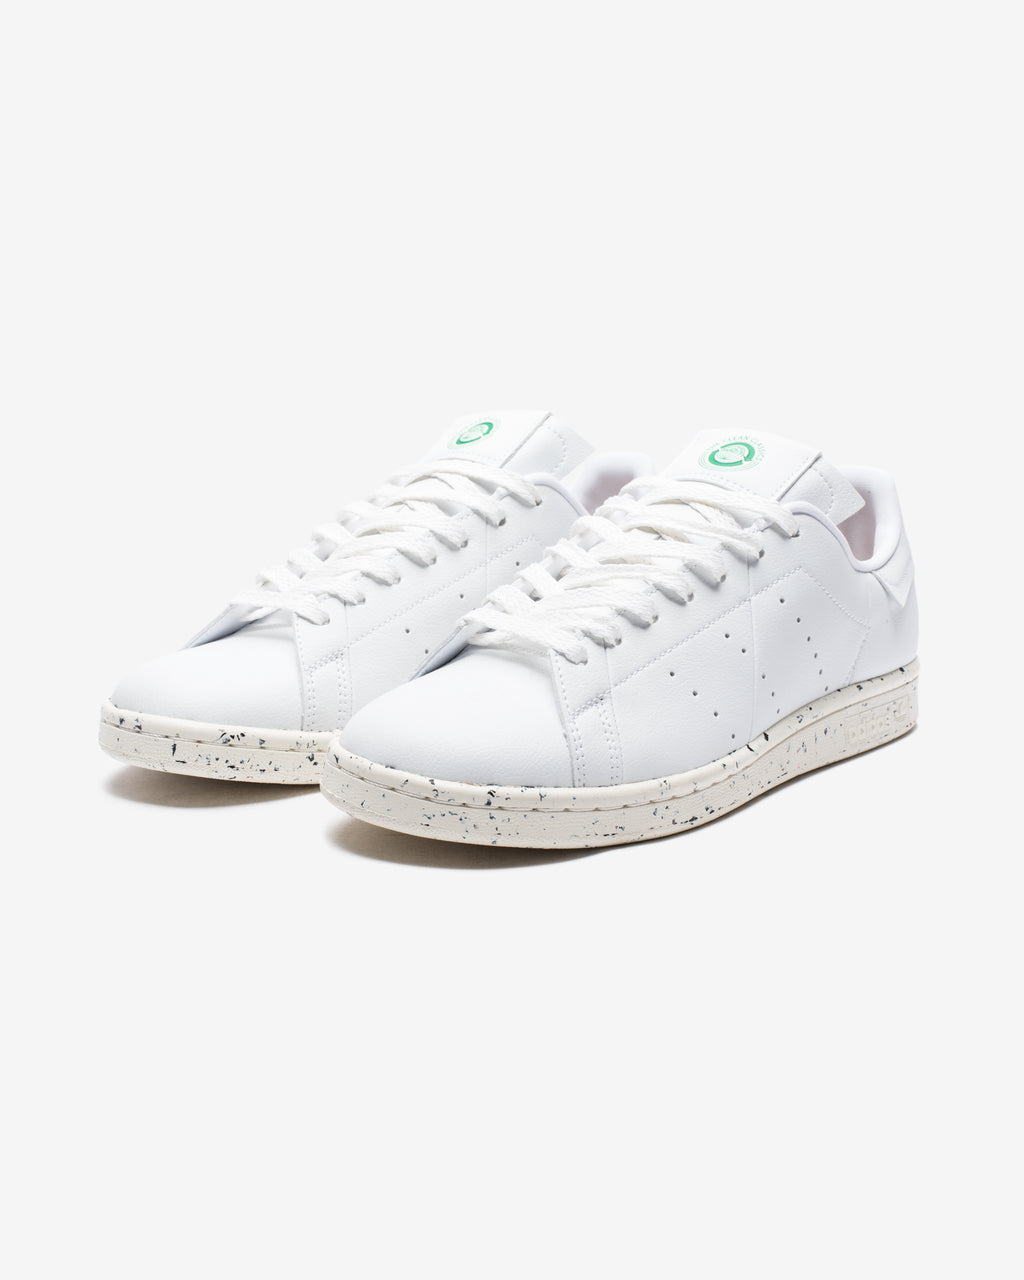 STAN SMITH (VEGAN) - FTWWHT/ OWHITE/ GREEN